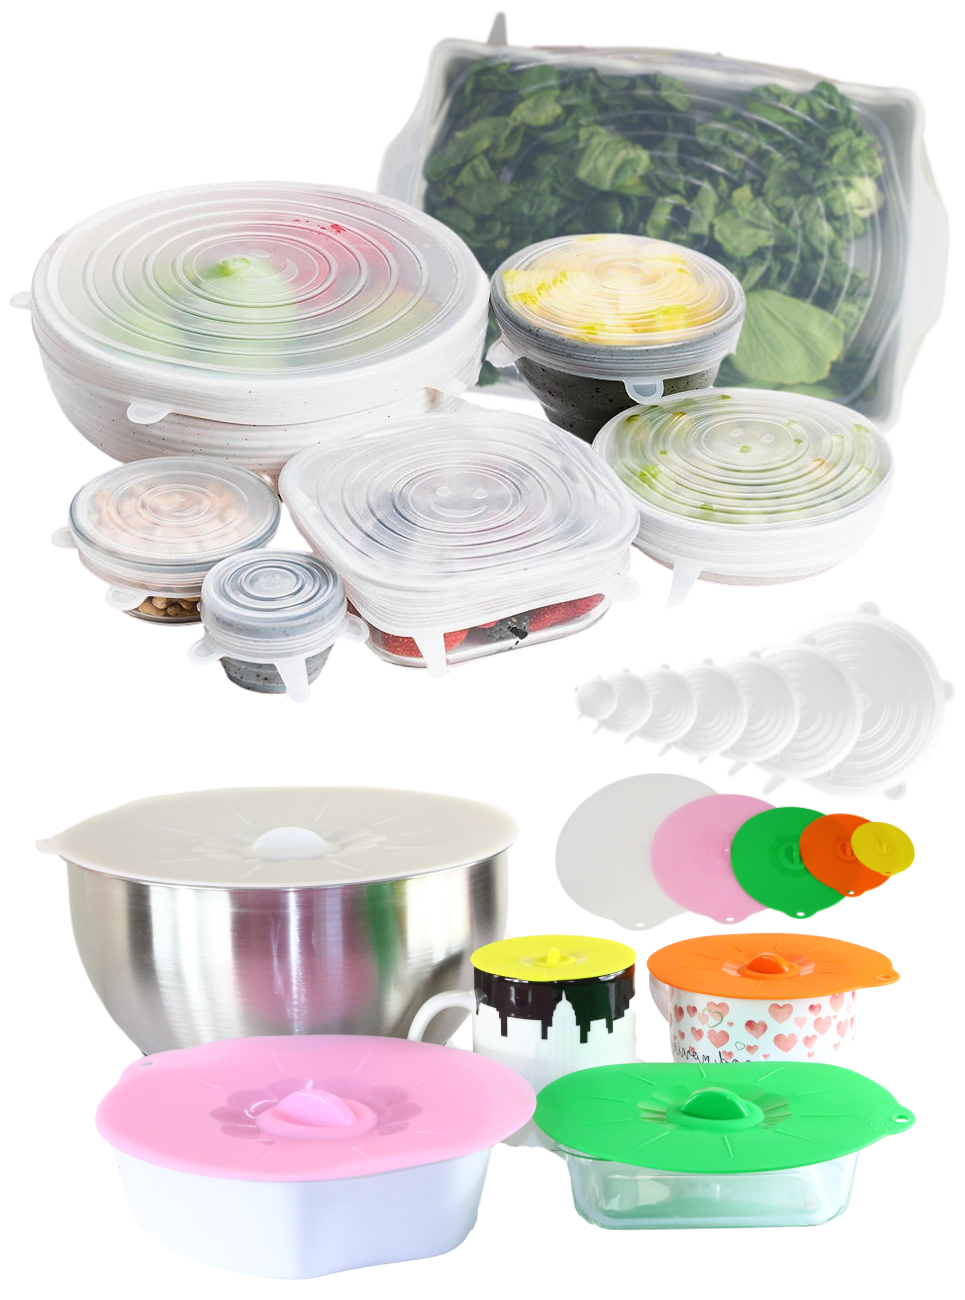 Silicone Stretch Lids Various Sizes incl. XLarge 11 Inch Lid & Silicone Suction Lids Combo